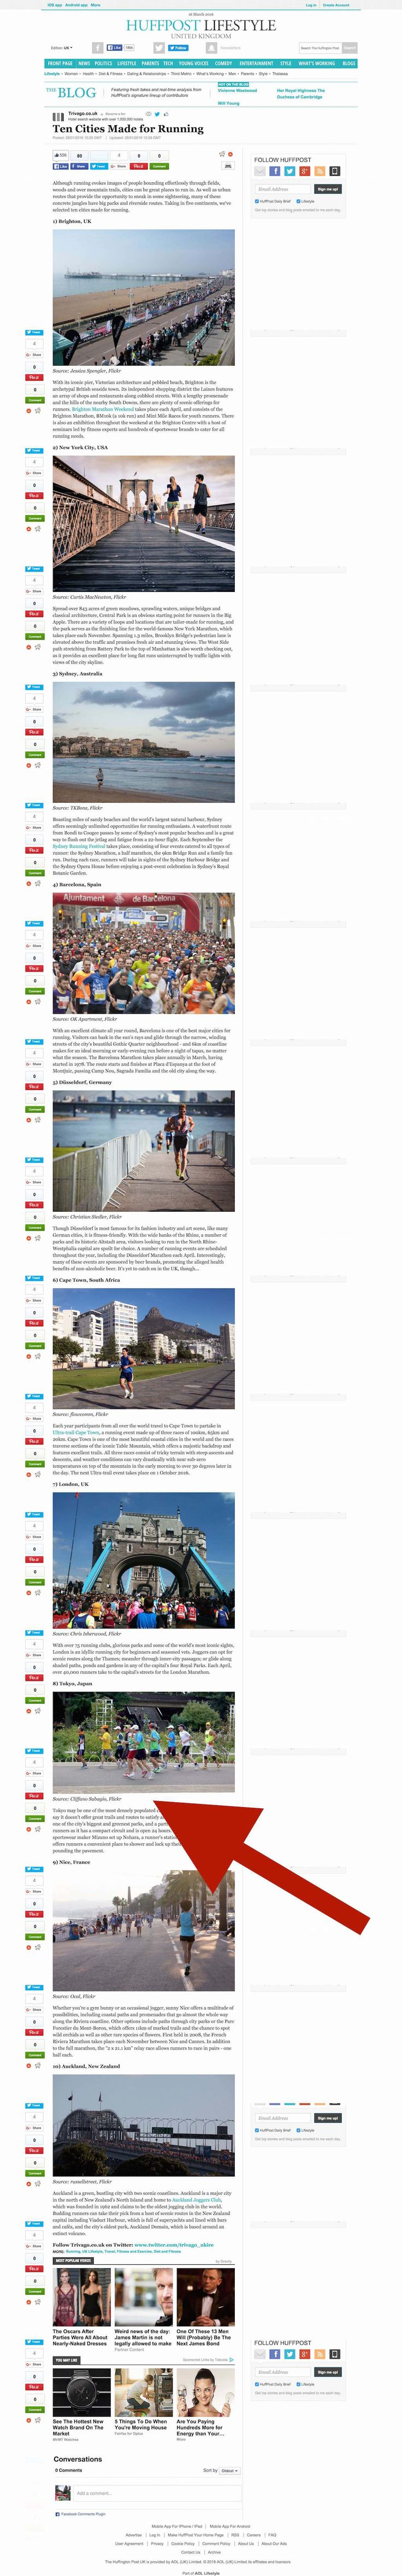 Huffington Post - Ten Cities Made for Running